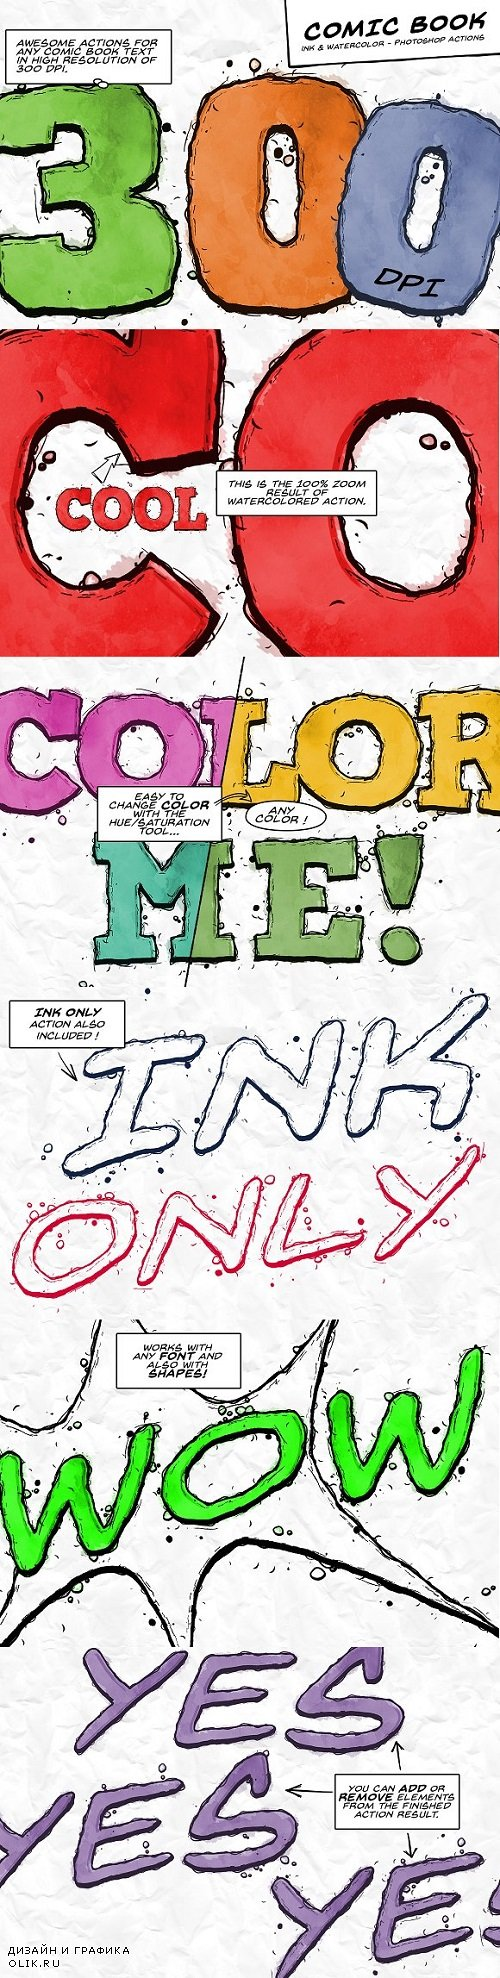 Comic Book Ink Actions - 300 DPI 1694043